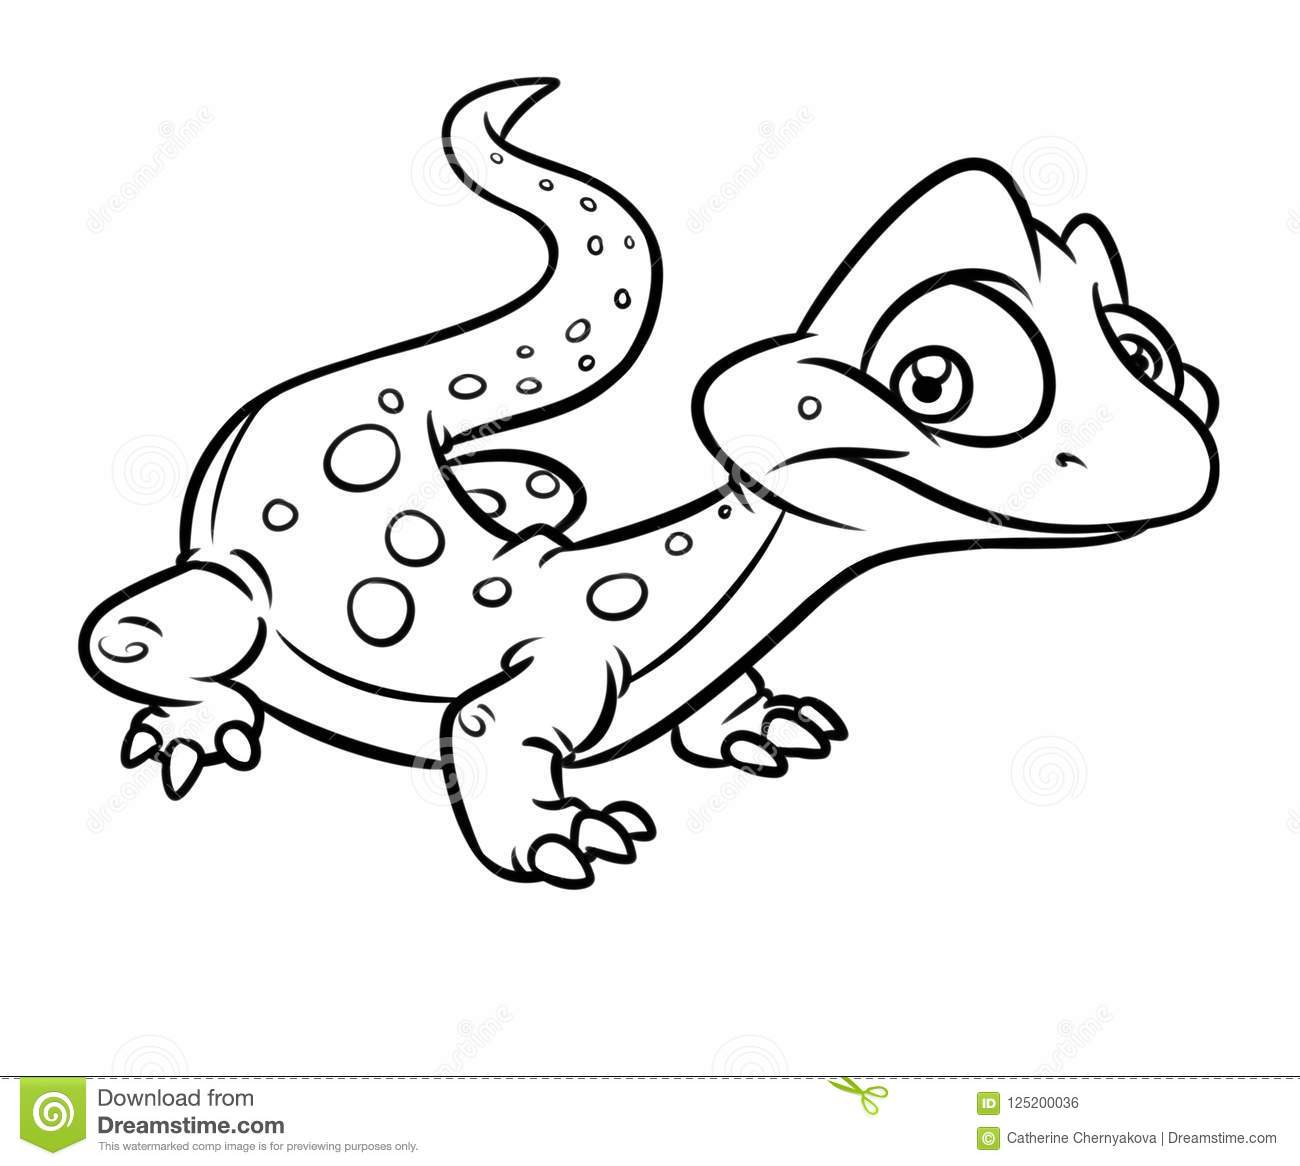 Little Lizard Cartoon Coloring Page Stock Illustration Illustration Of Little Graphics 125200036